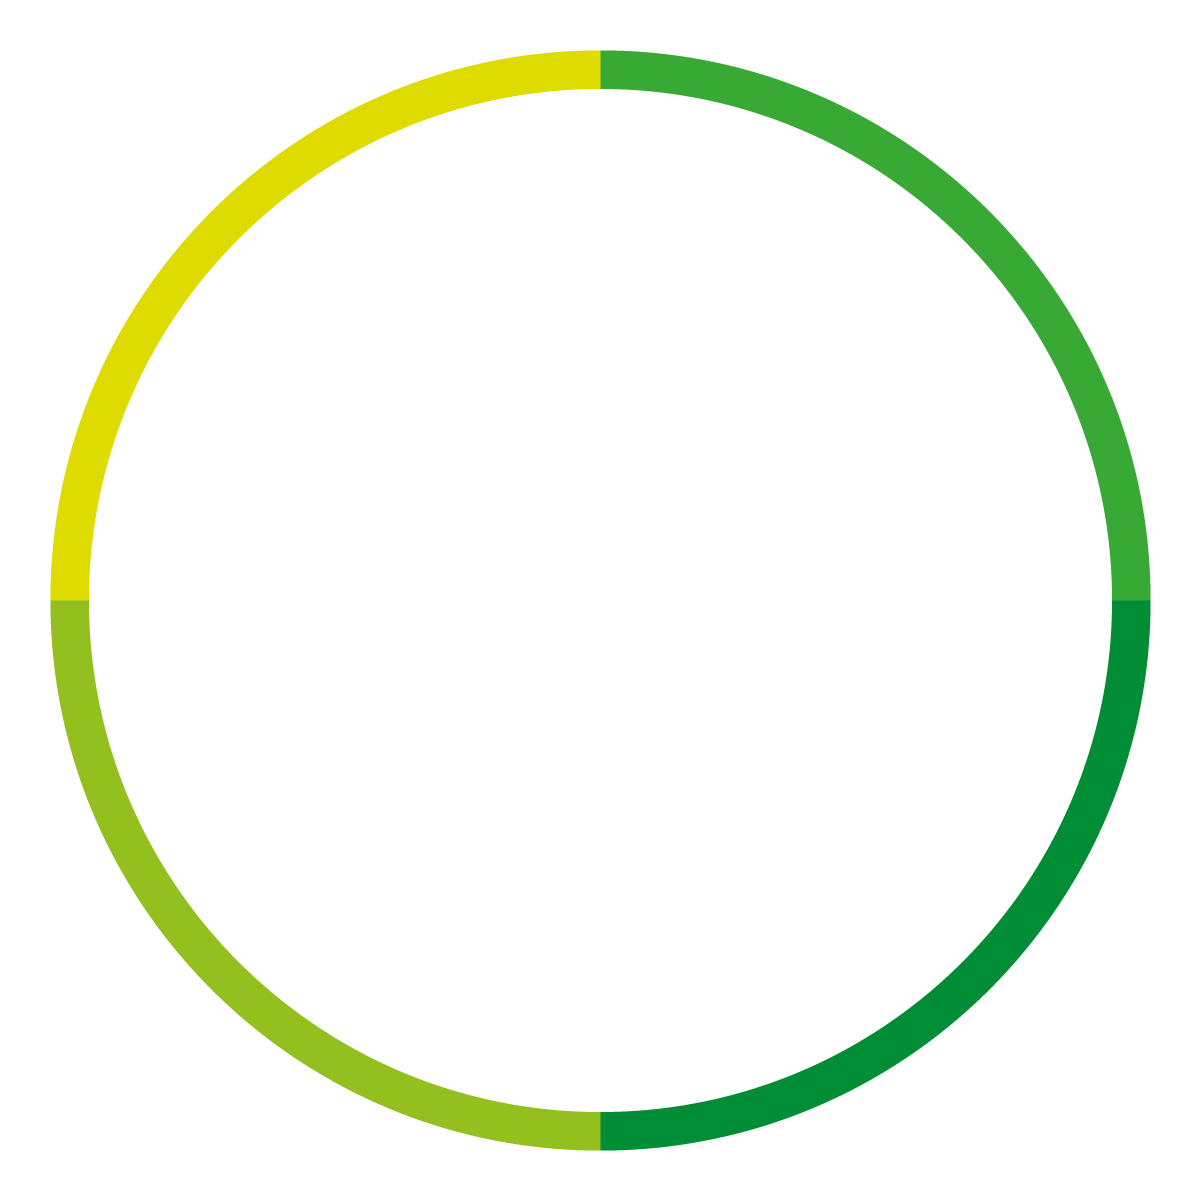 Savoy Timber - 103 Position 1 Rankings